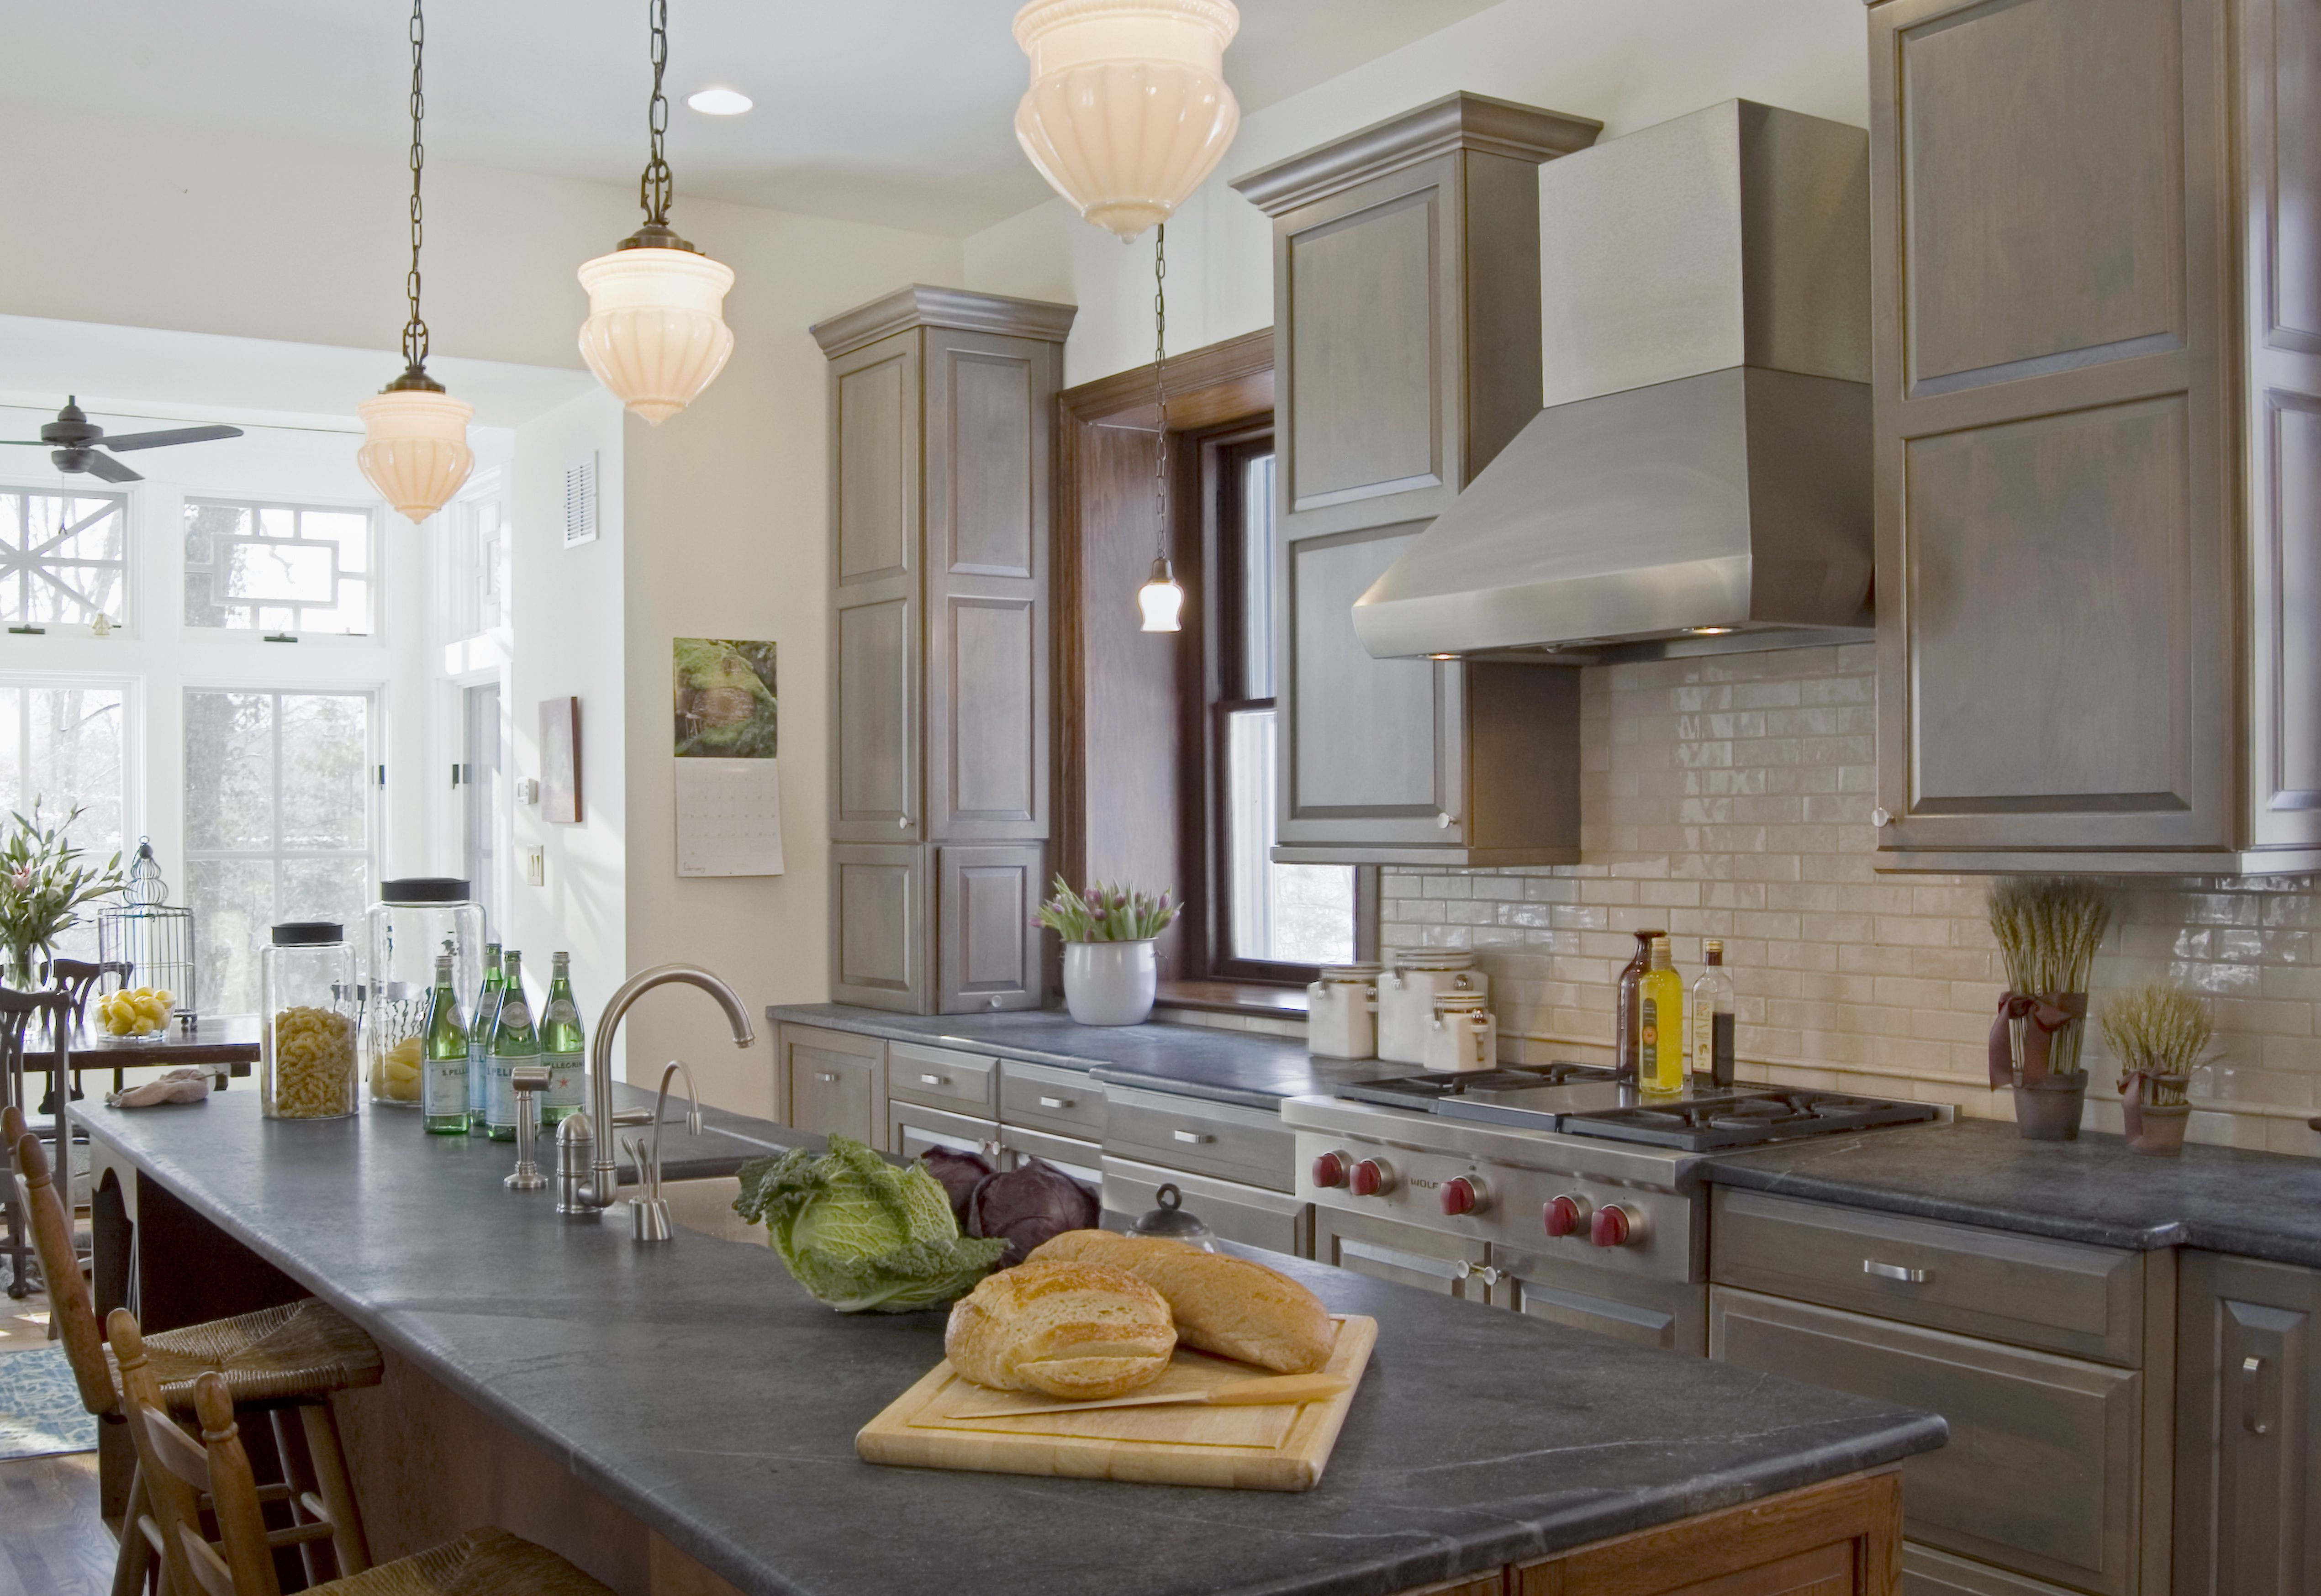 Astounding Top Picks For Countertops Kitchen Ideas Wooden Kitchen Home Interior And Landscaping Oversignezvosmurscom